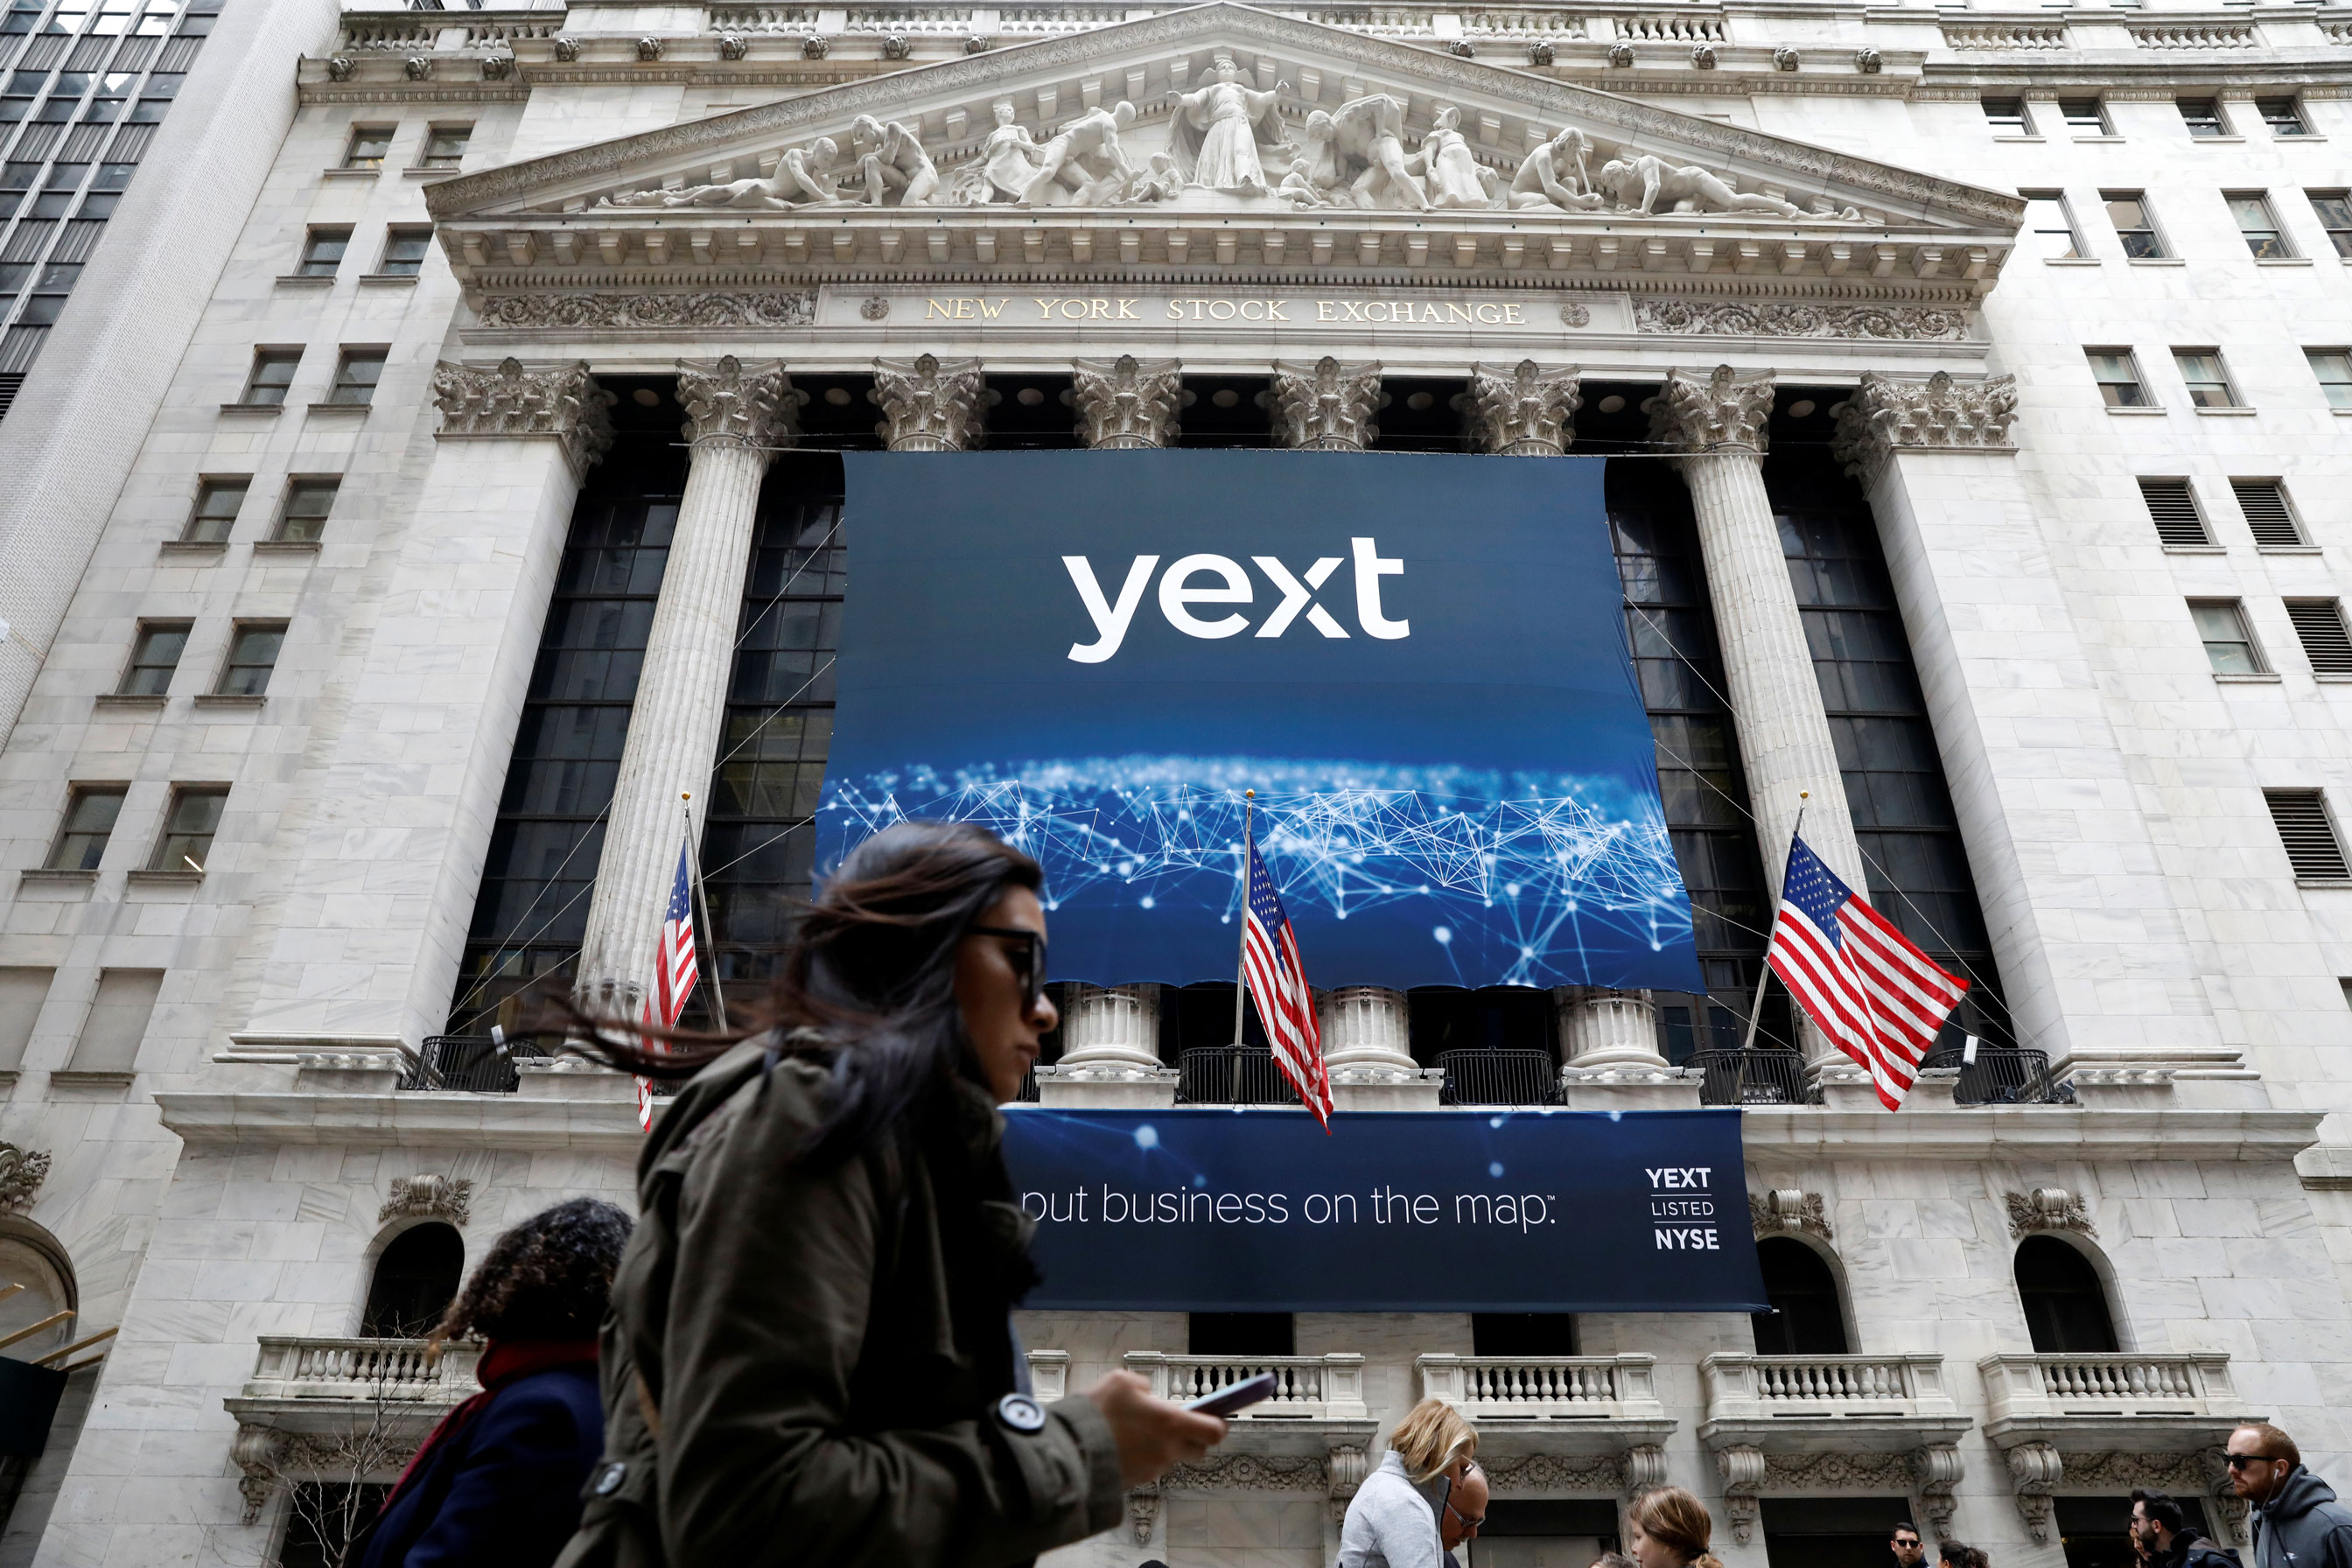 Yext touts 38% revenue growth as it adds retail locations to search